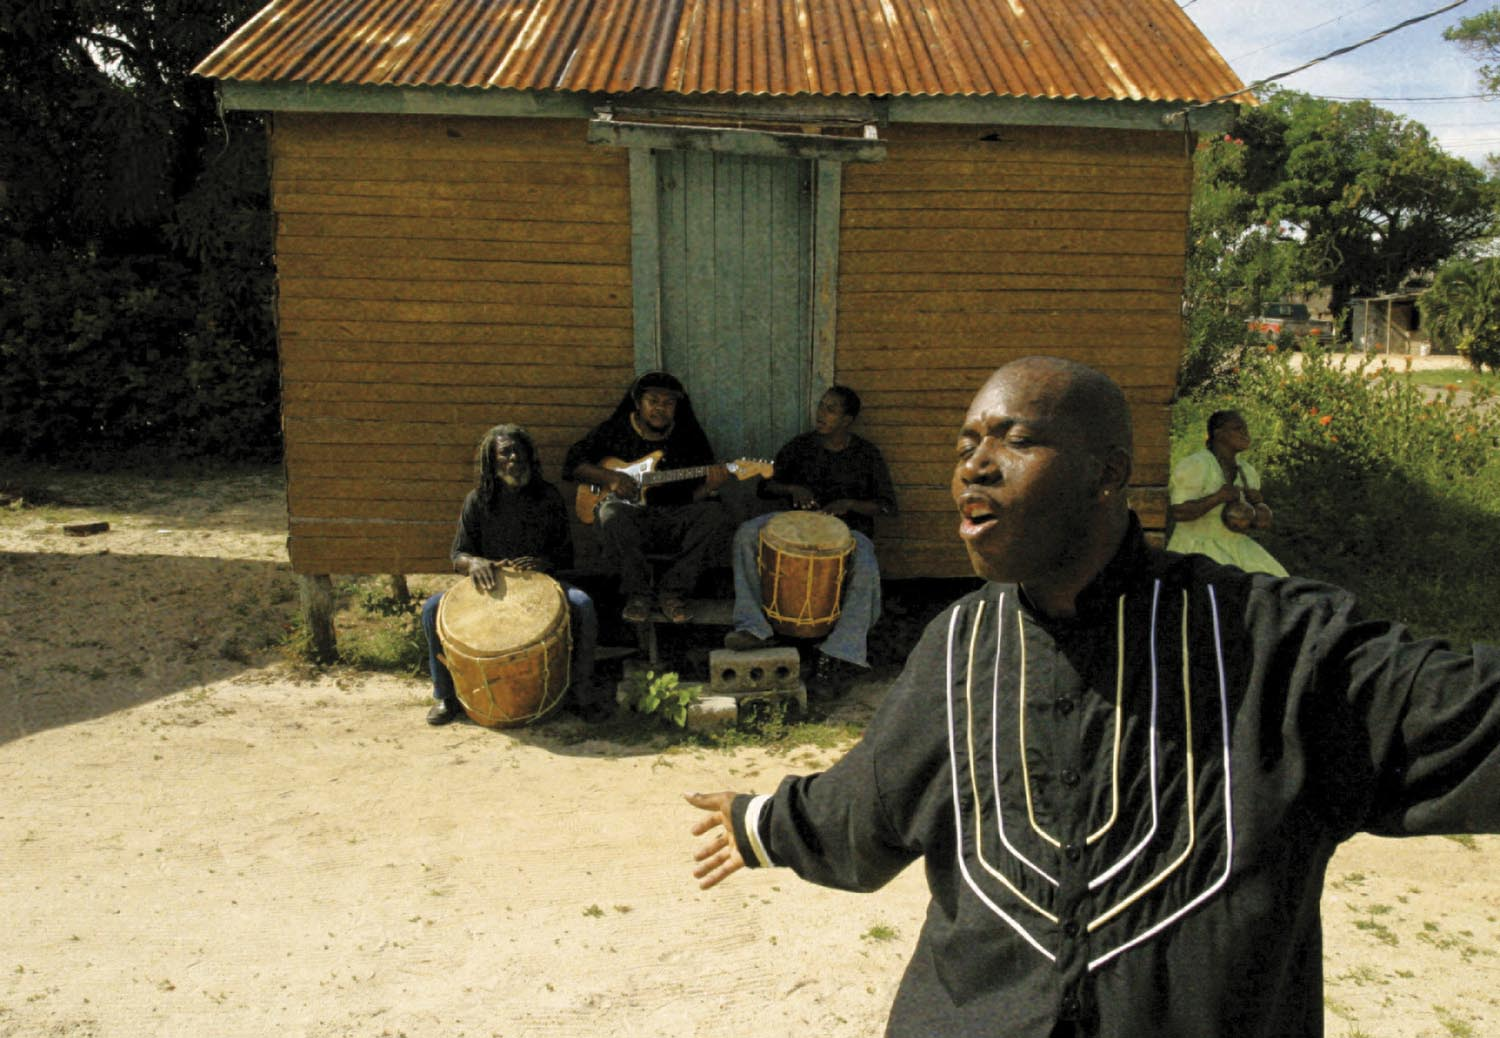 Andy Palacio with members of the Garifuna Collective in the background. Photograph courtesy Cumbancha/Tim O`Malley